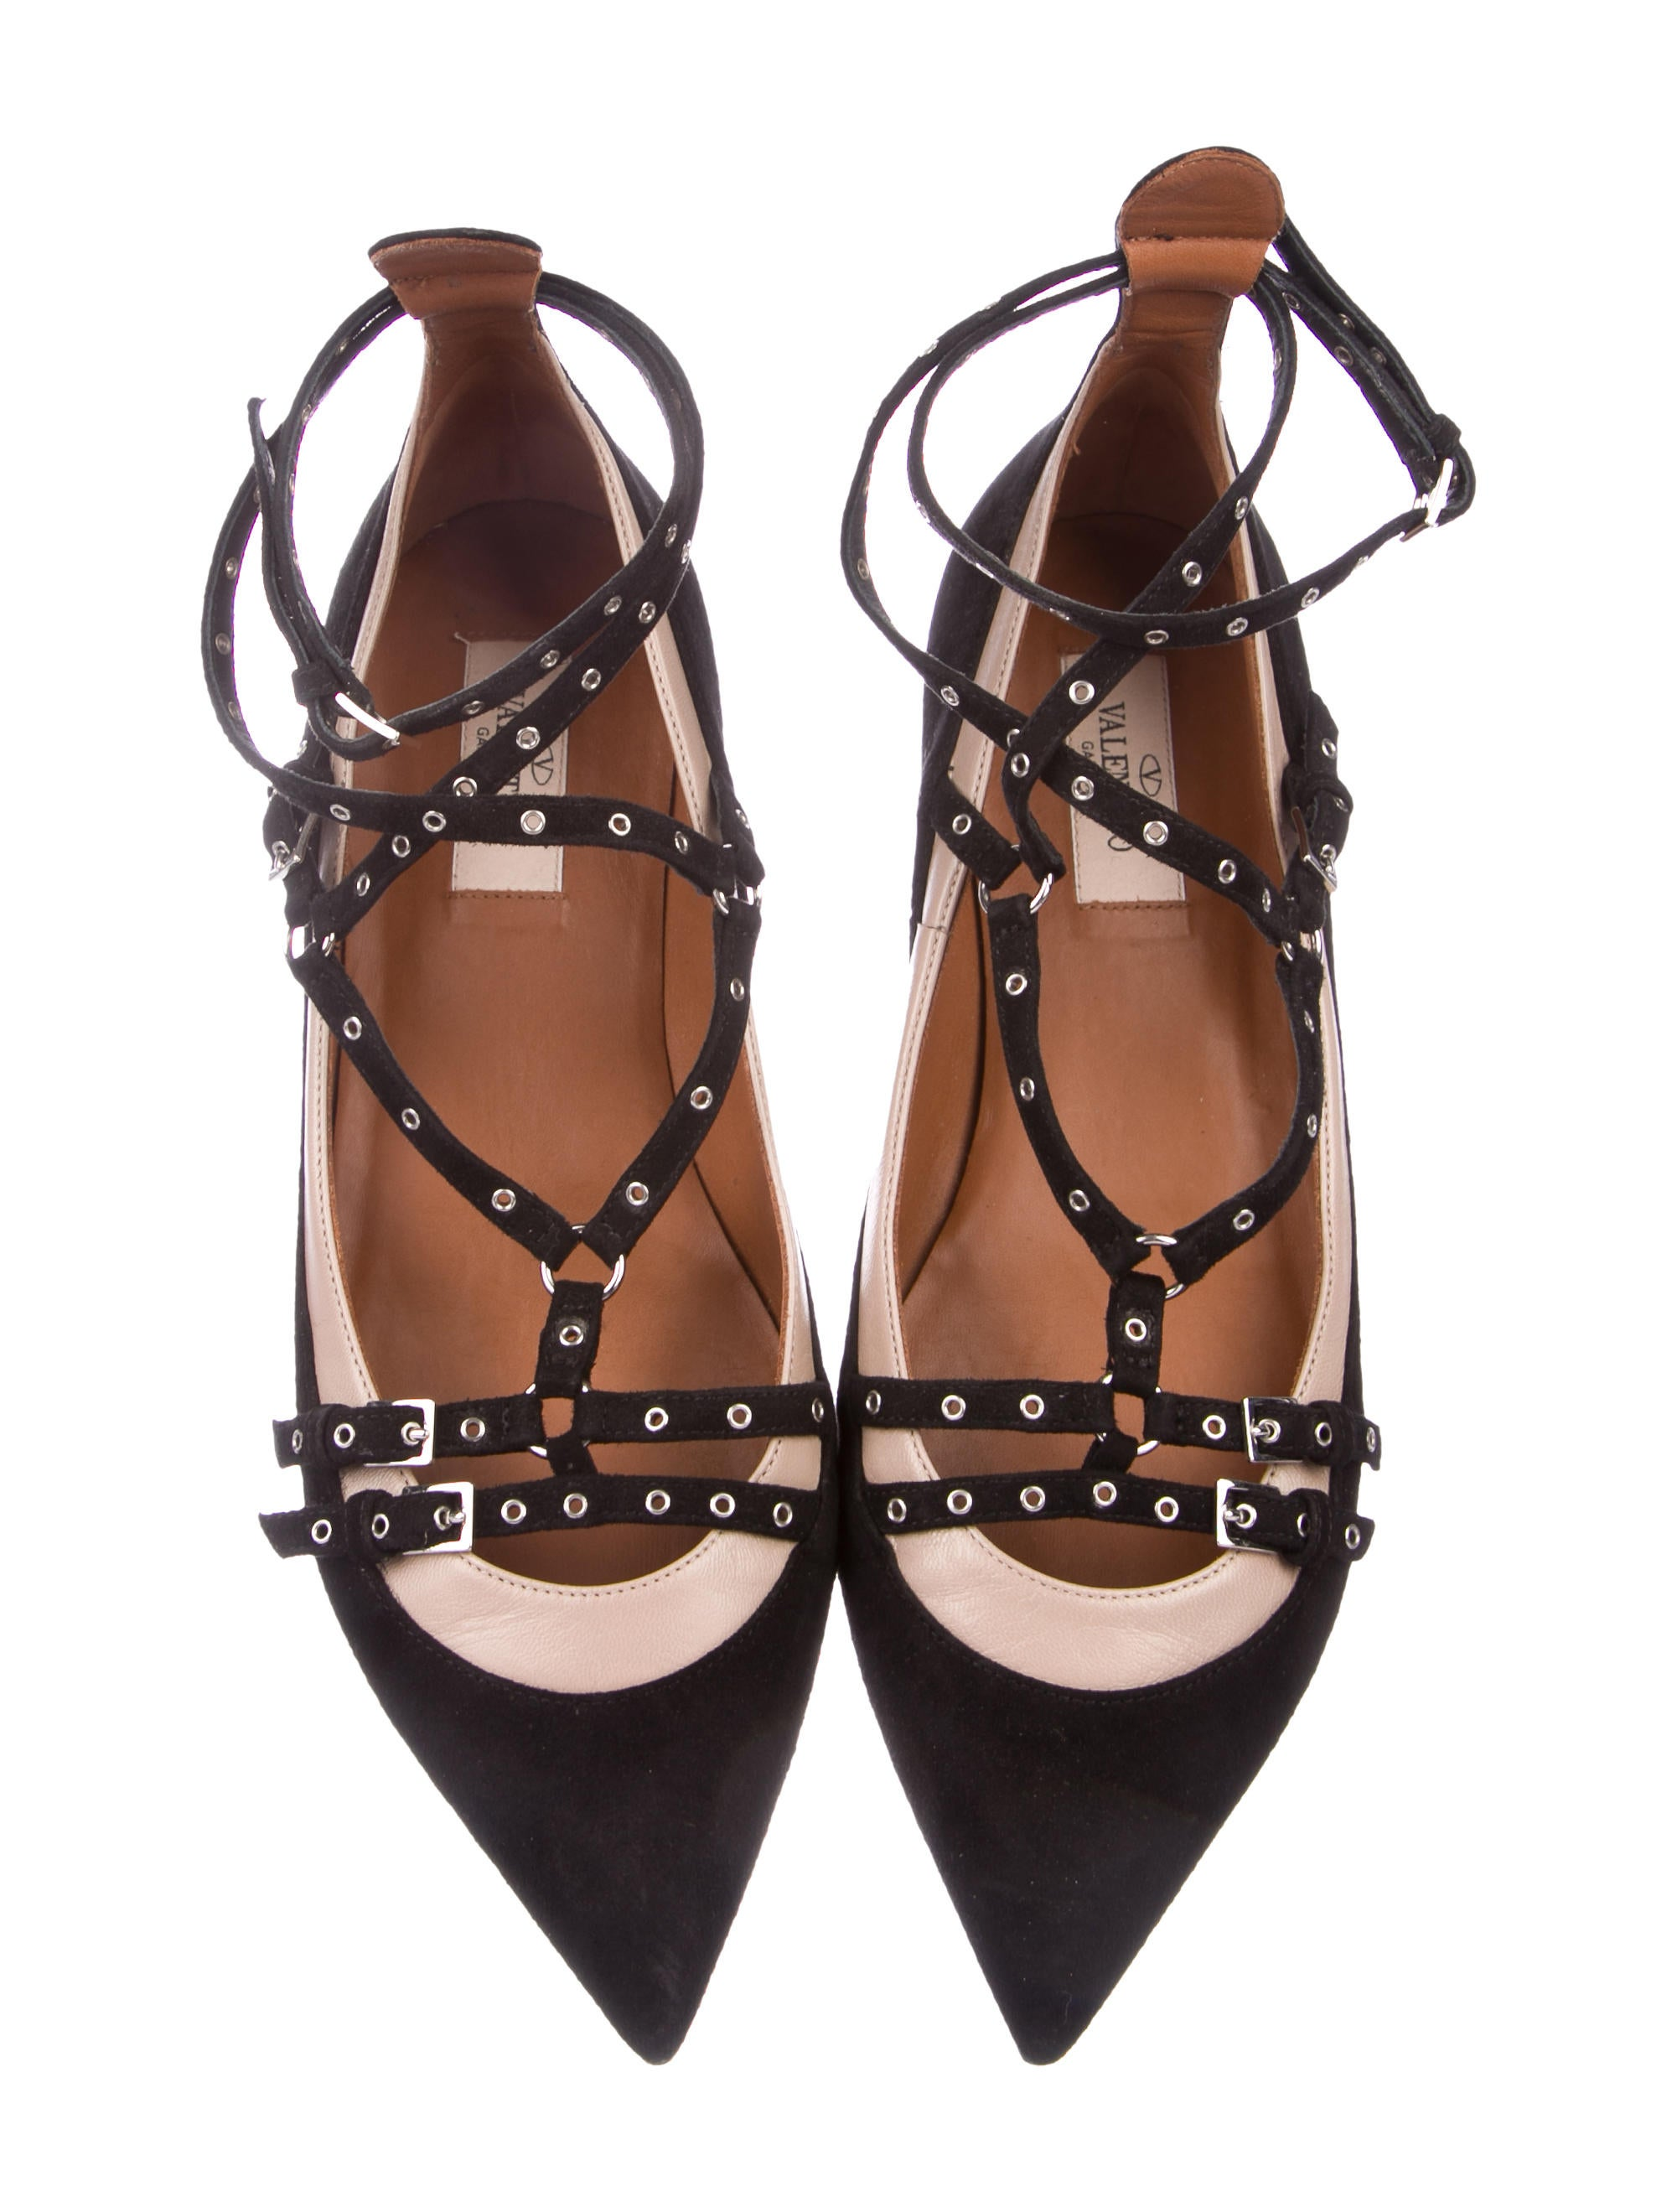 Valentino Suede Grommet-Accented Flats low price fee shipping cheap online tvRFIdodPy